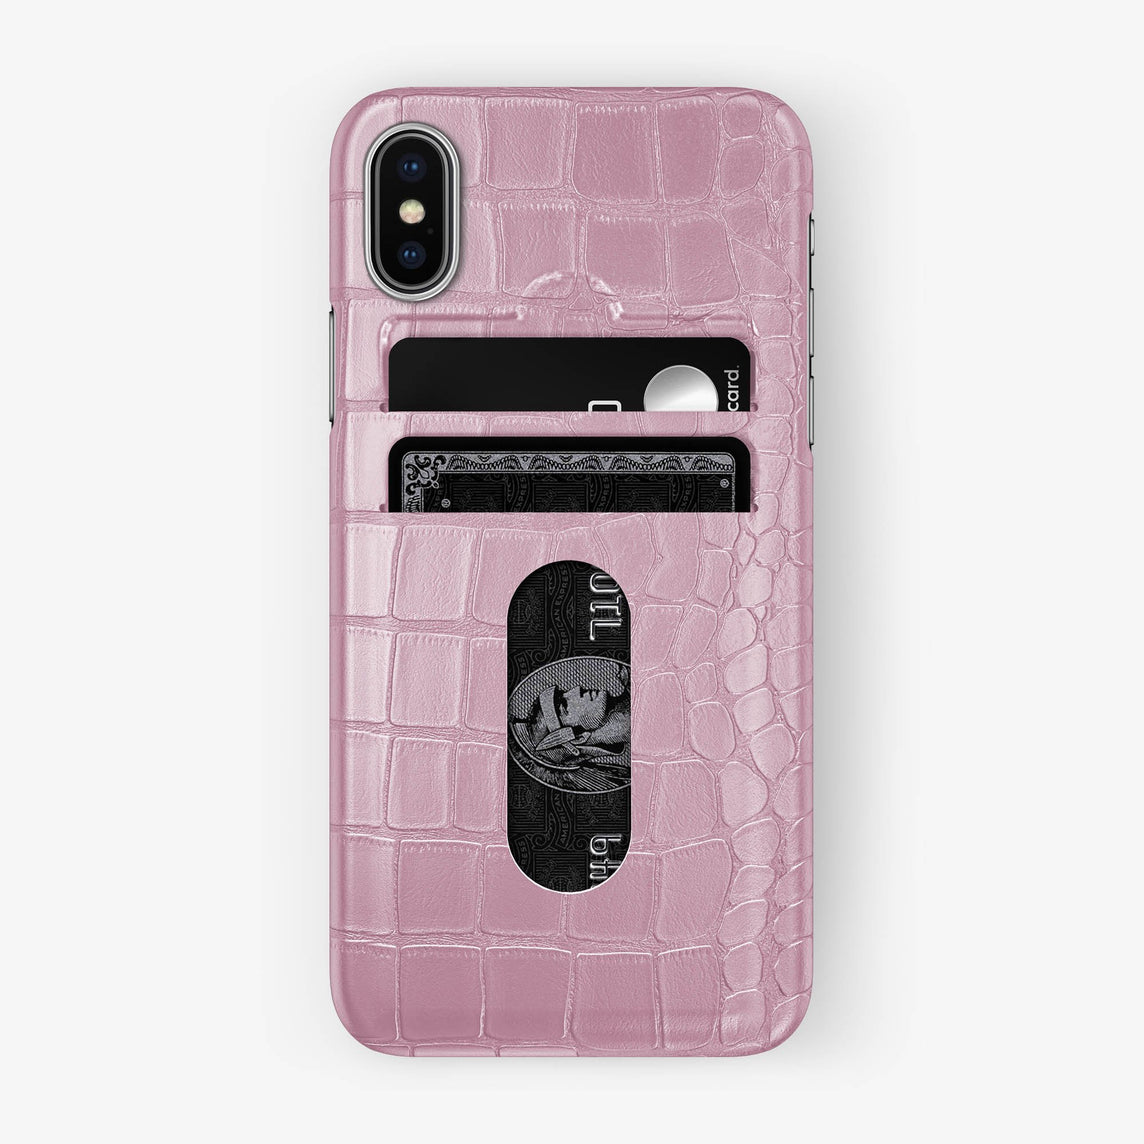 Alligator Card Holder Case iPhone Xs | Pink - Stainless Steel - Hadoro